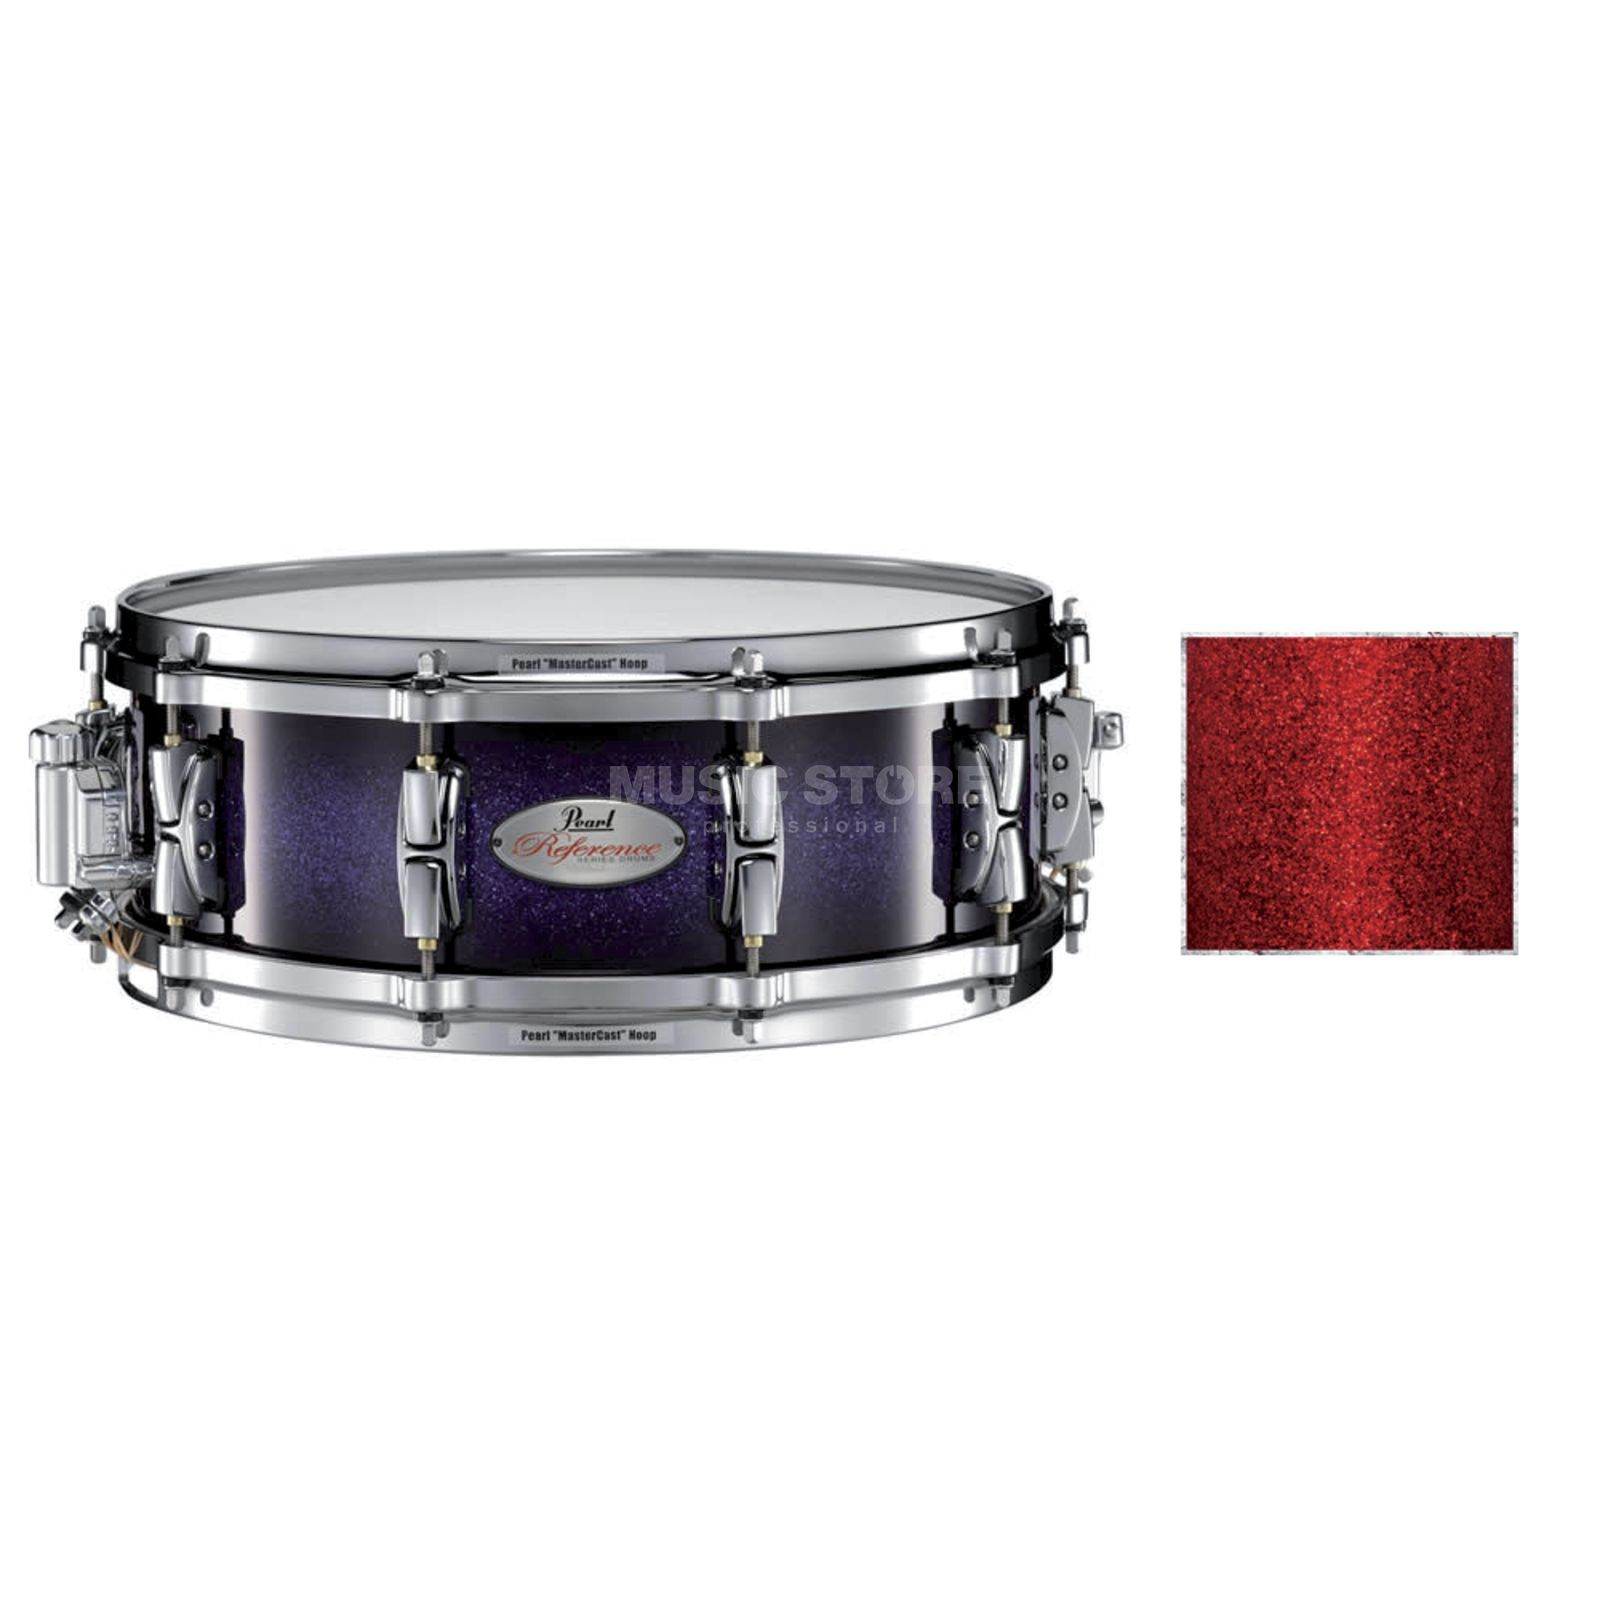 "Pearl RF1450S/C Reference Snare 14""x5"", Red Glass #408 Produktbillede"